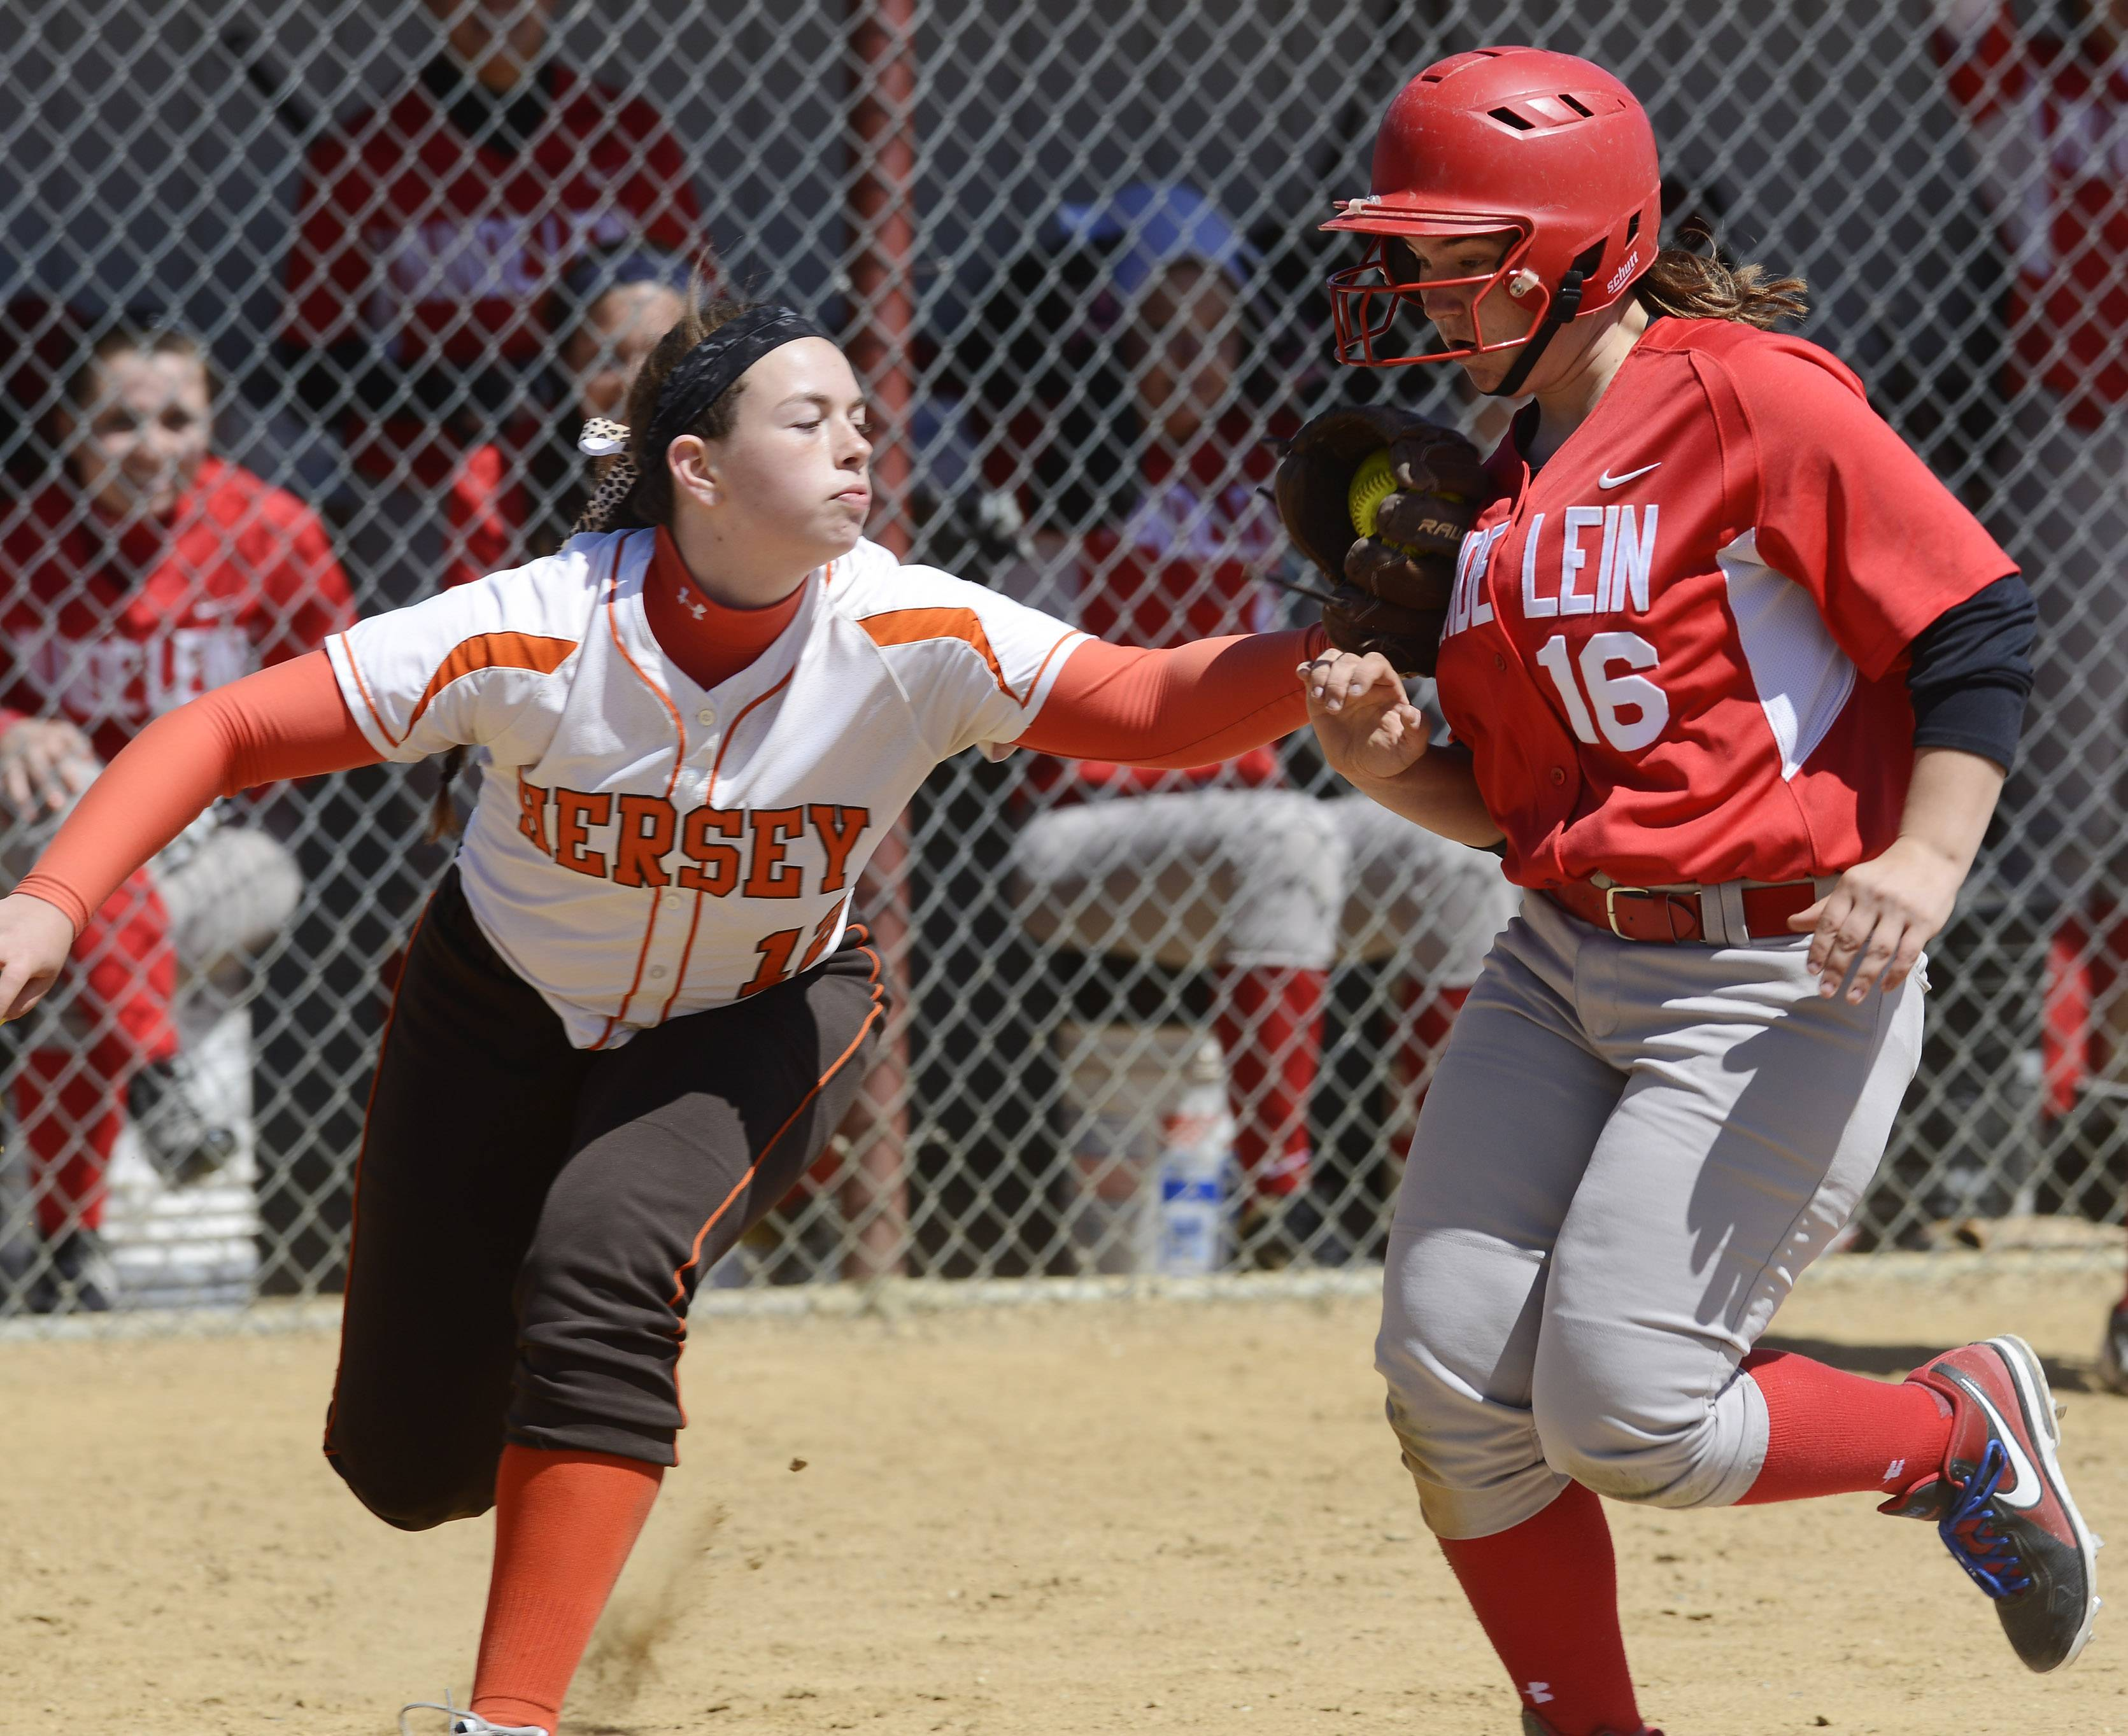 Hersey's Angela Schmiederer, left, tags out Mundelein's Hannah Bulgart in a fifth-inning rundown between third and home during Saturday's game at Mundelein.